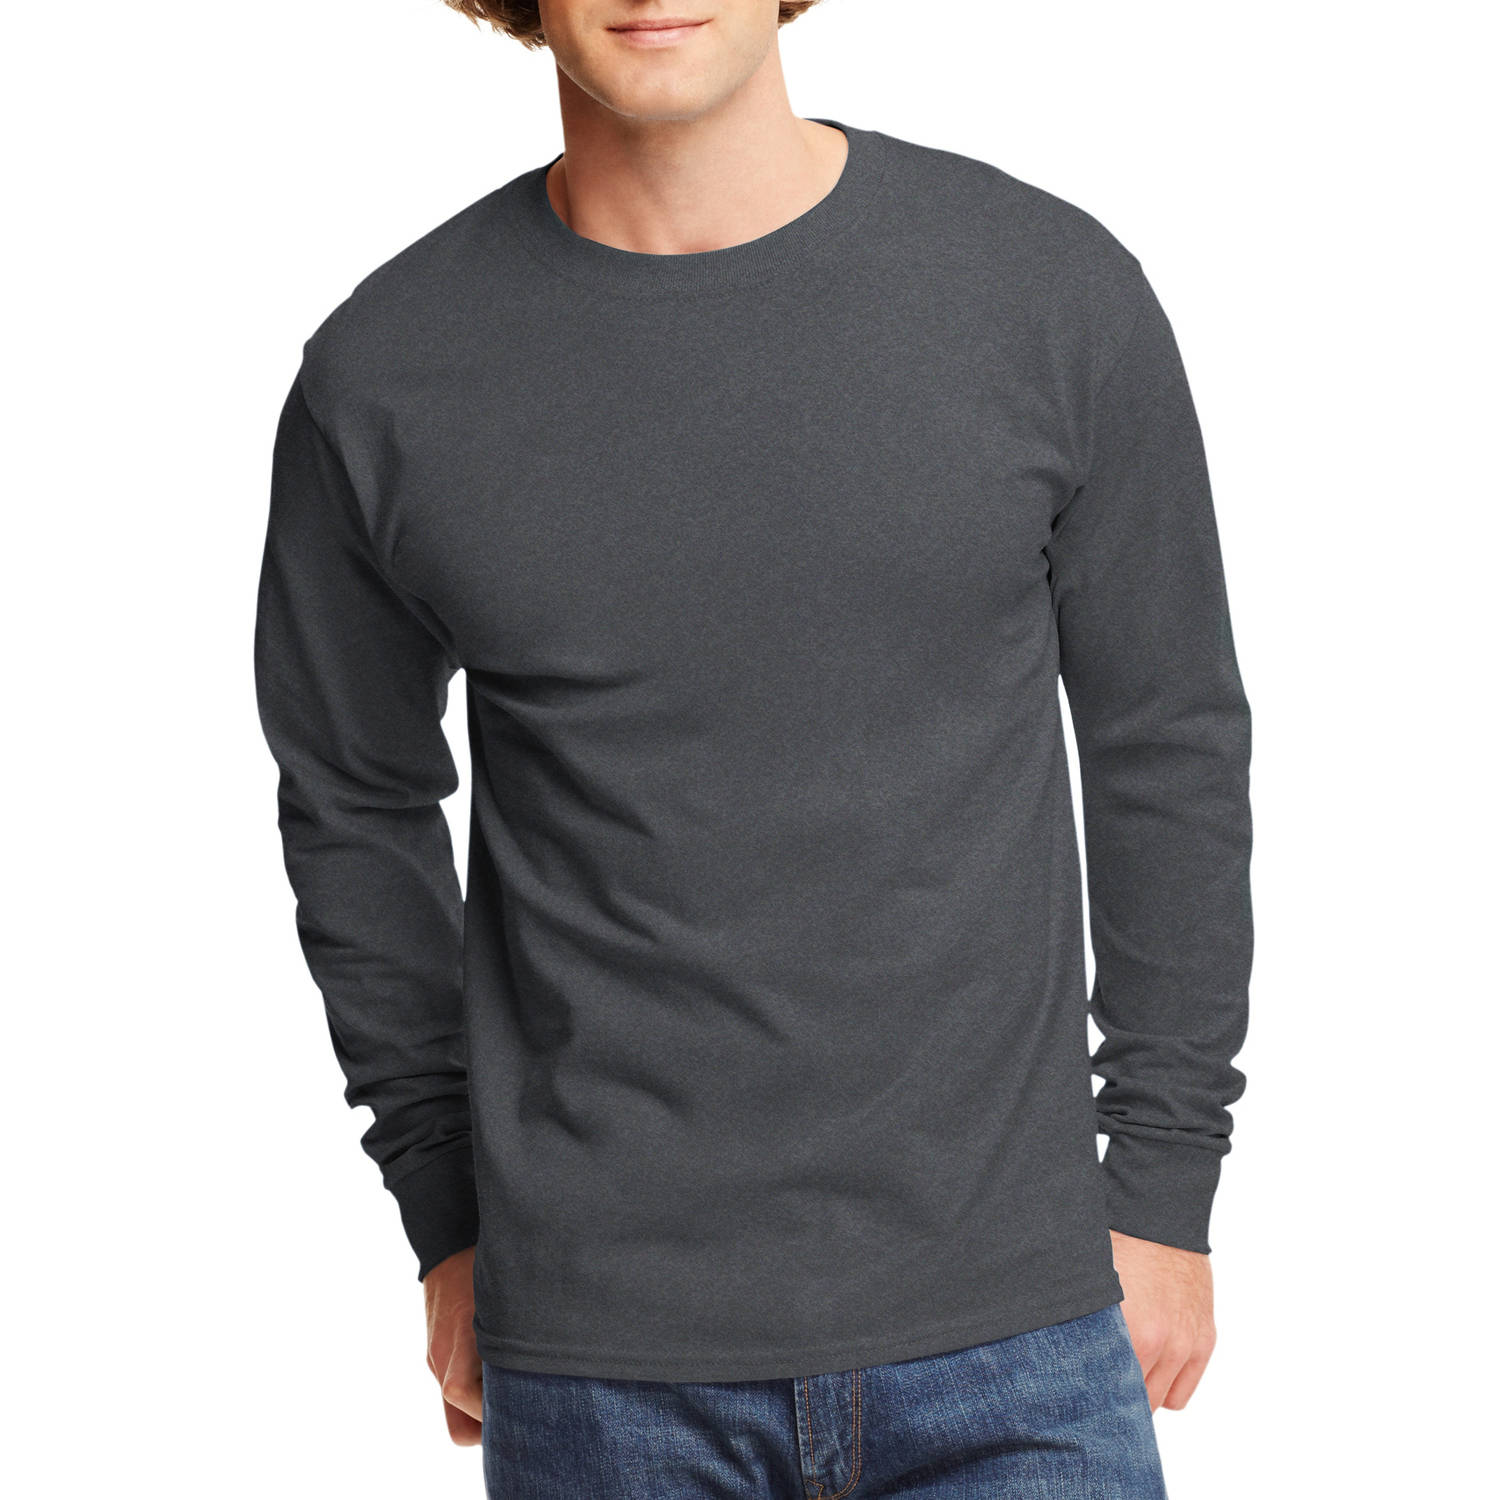 Hanes Men's Tagless Long Sleeve T-shirt